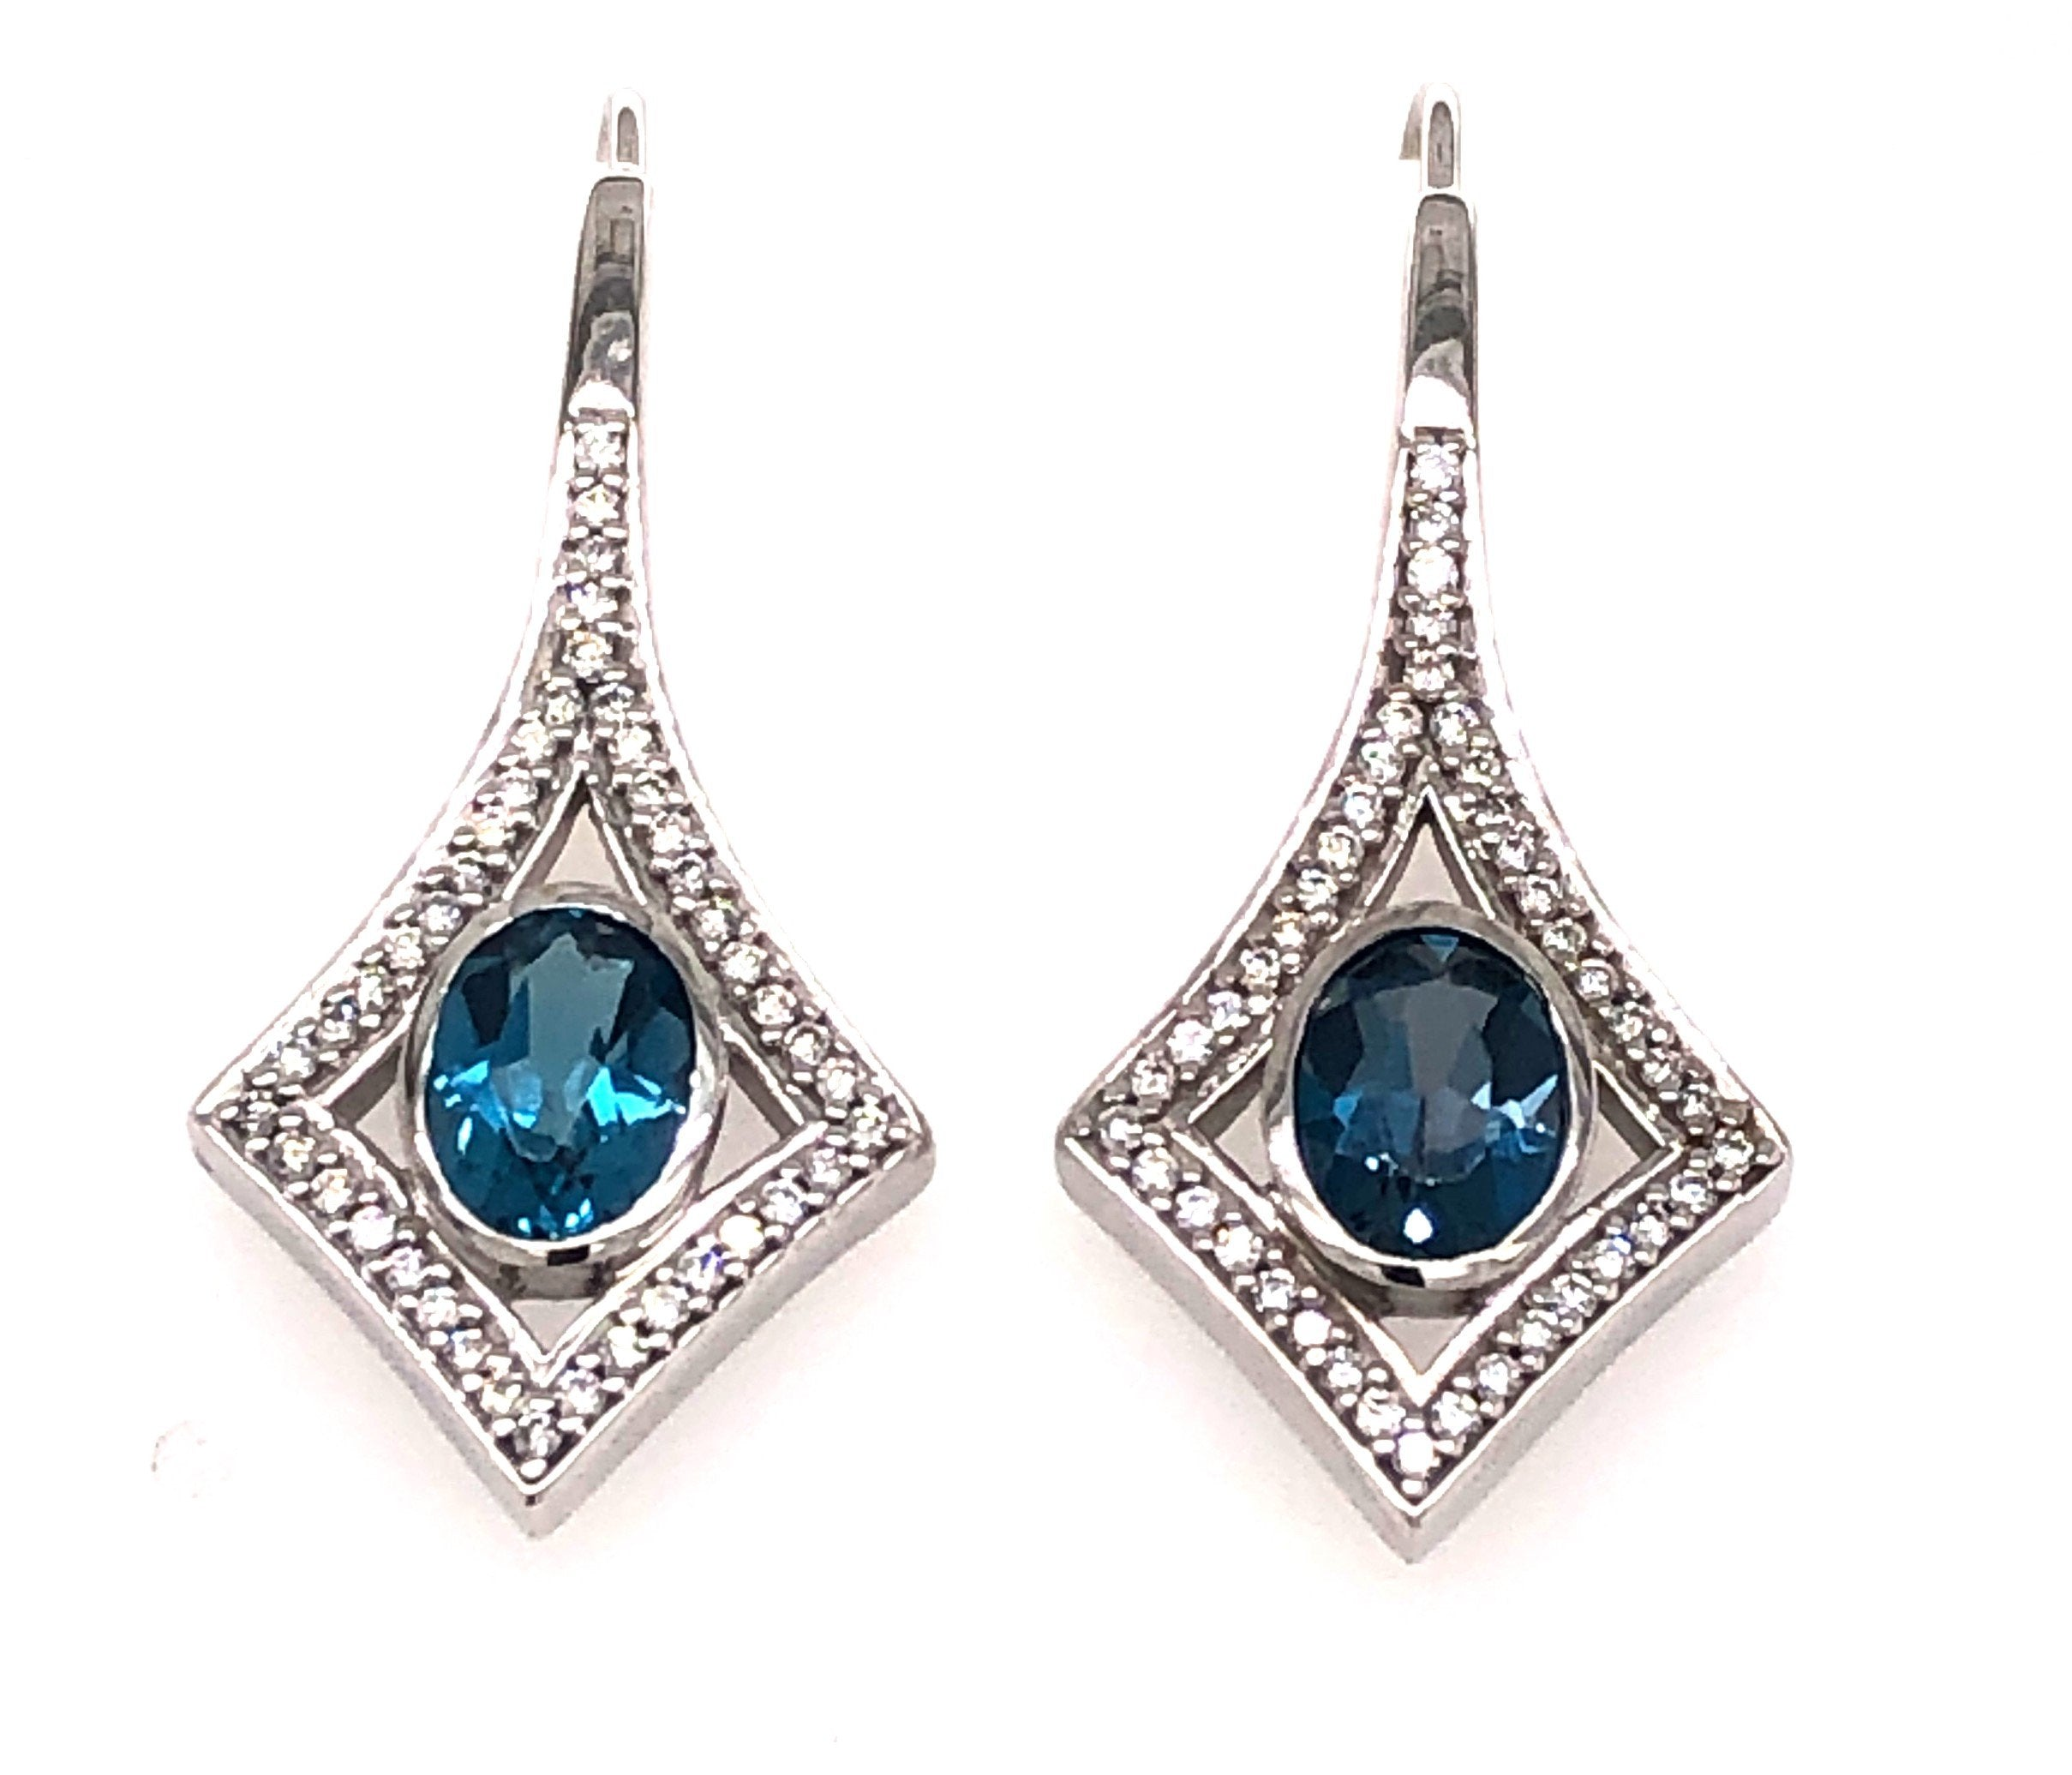 Deco-Style Blue Topaz Earrings